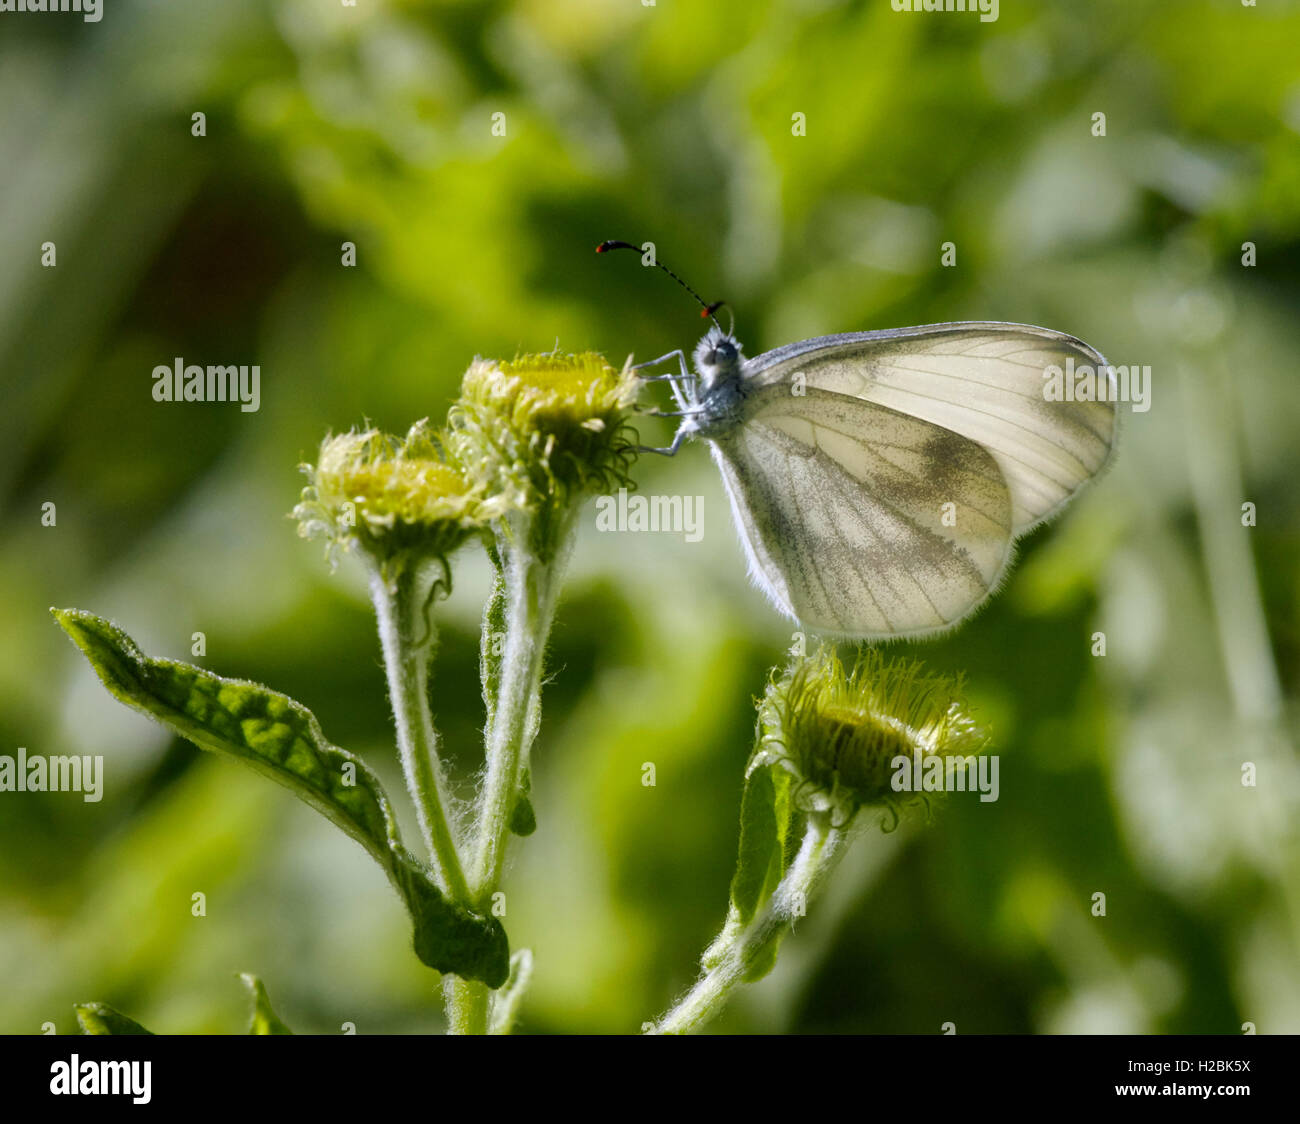 Wood White butterfly perched on flower head.  Chiddingfold Forest, Surrey, England. - Stock Image